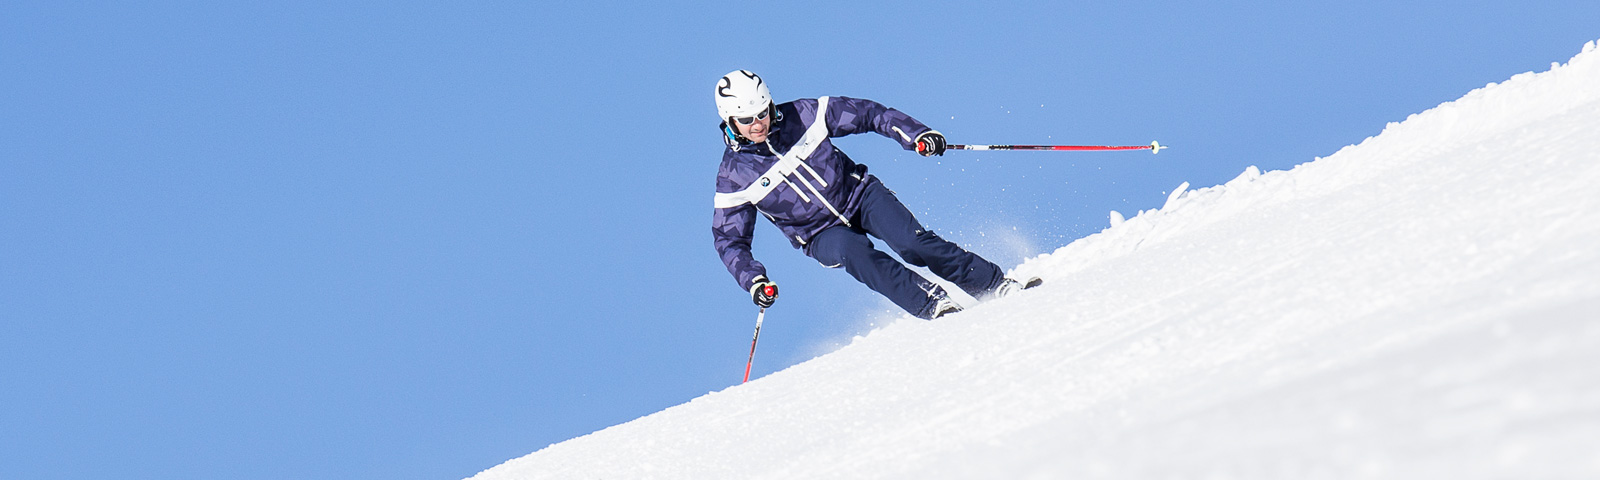 AlpinrockerPrivate ski school Soelden